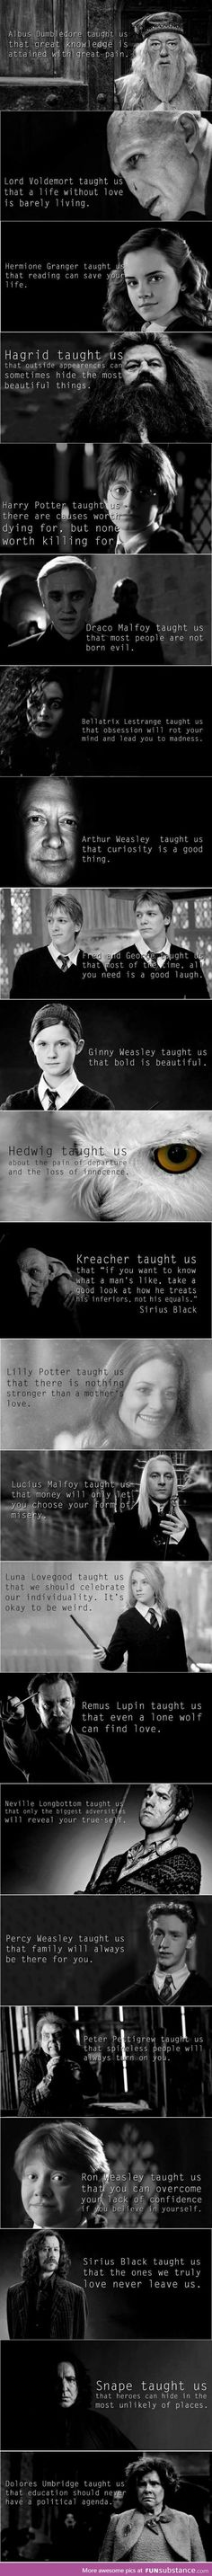 What the Harry Potter books thought us..